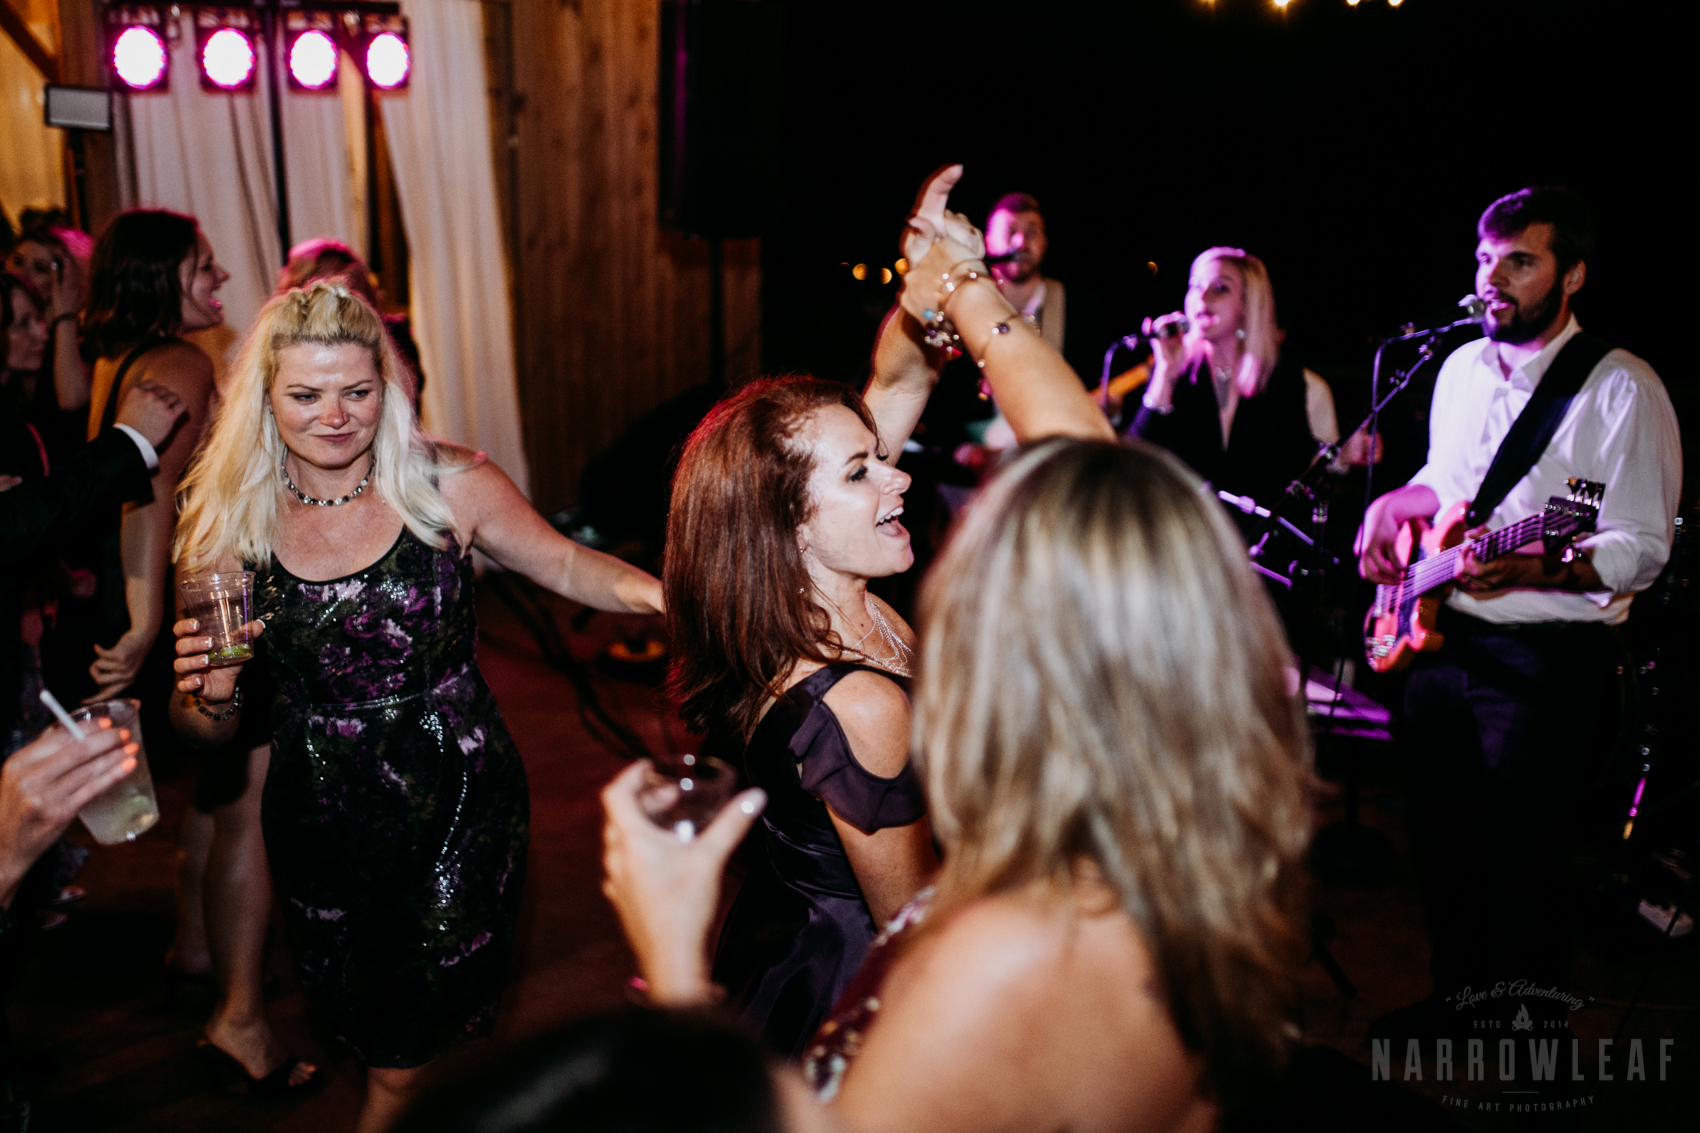 live-band-dancing-outdoor-wedding-reception-at-burlap-and-bells-wi-7.jpg